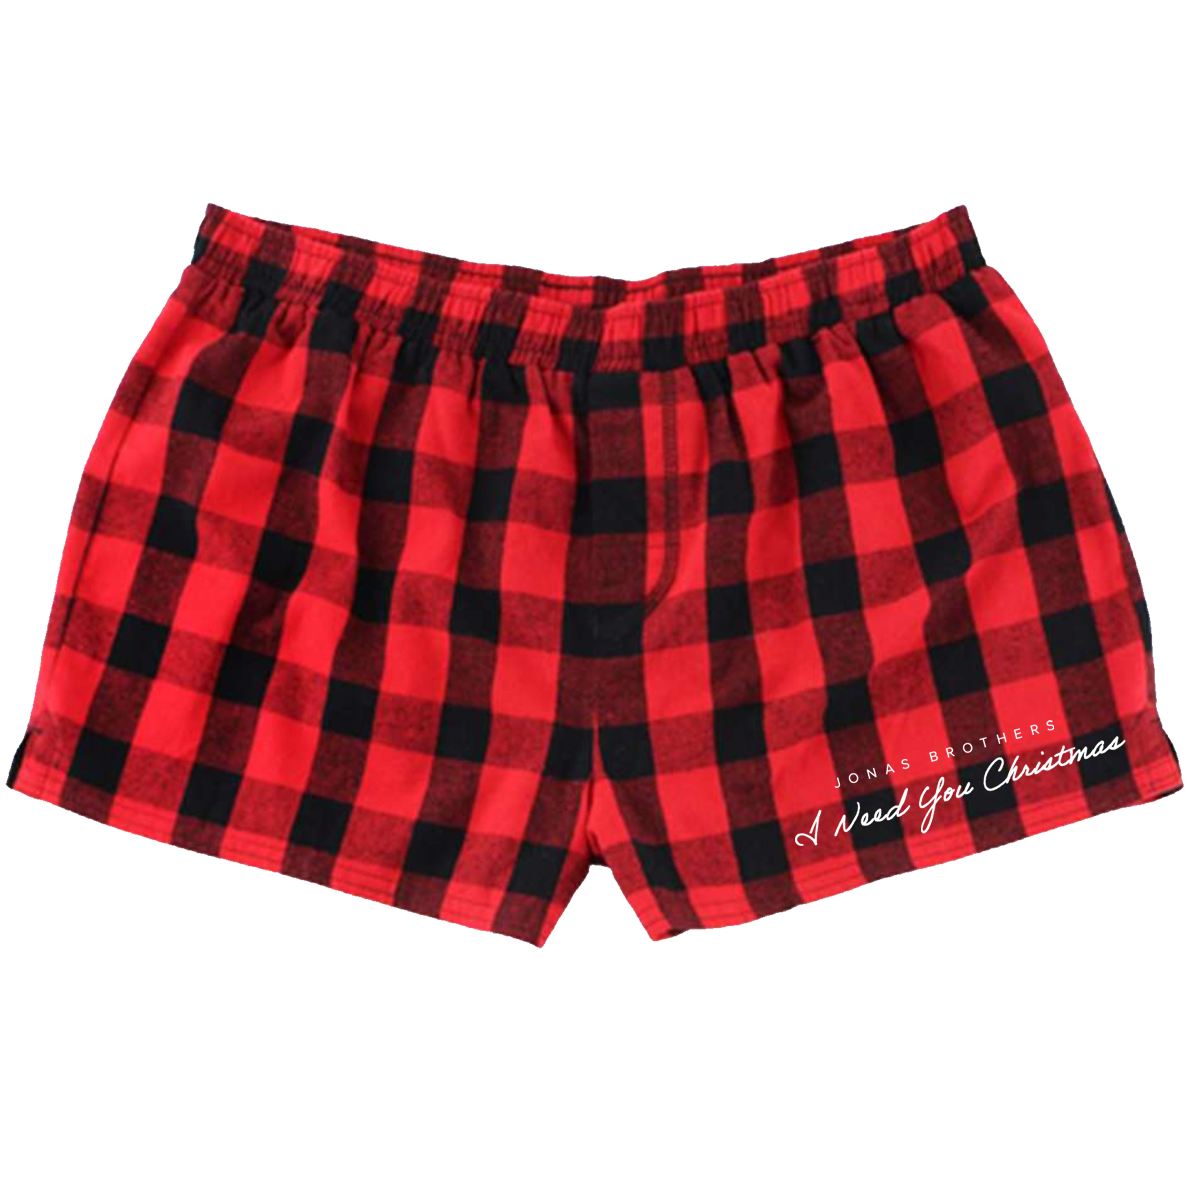 I NEED YOU CHRISTMAS PAJAMA SHORTS-Jonas Brothers